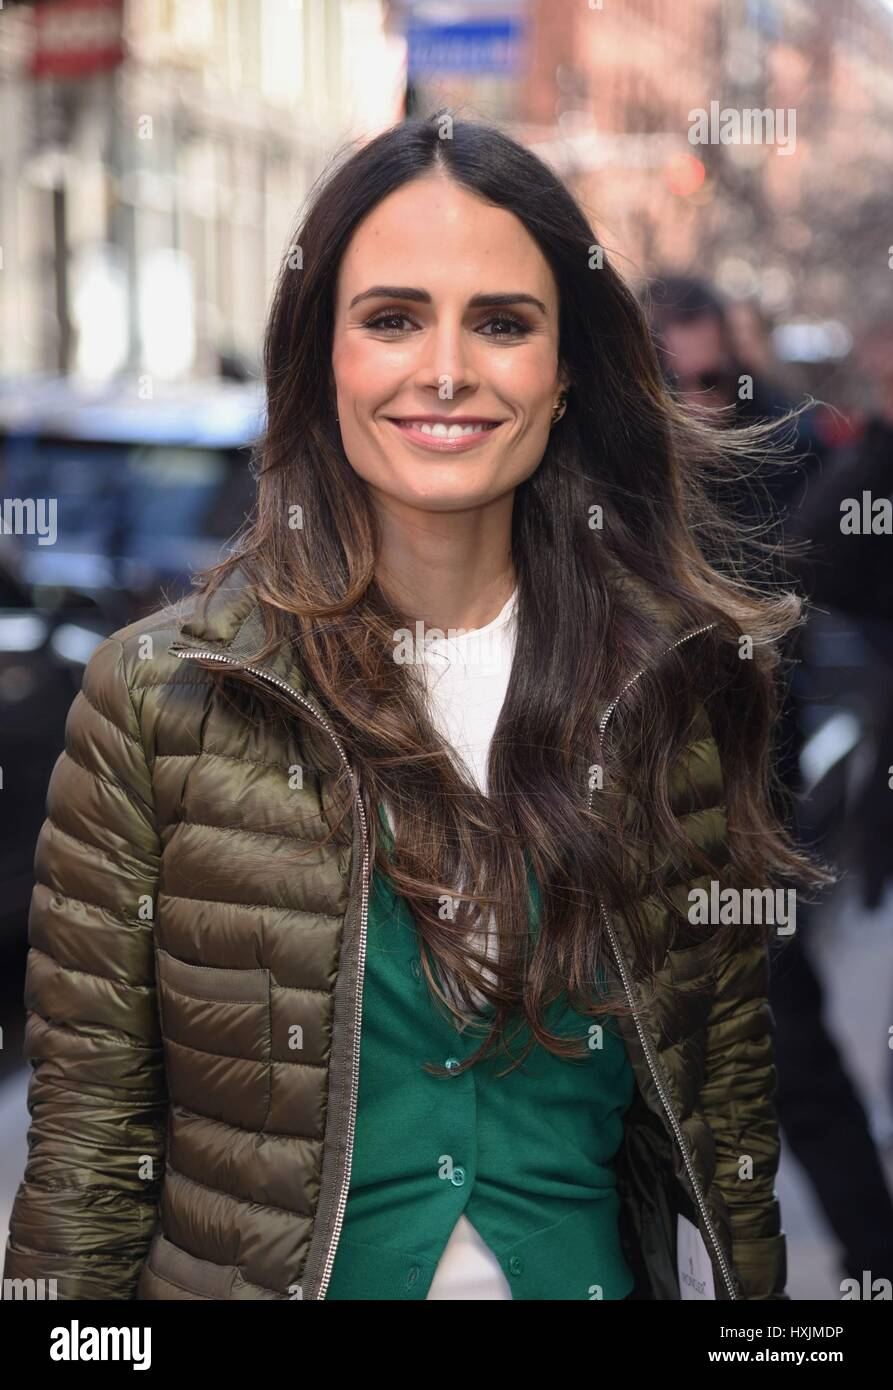 New York, NY, USA. 29th Mar, 2017. Jordanna Brewster out and about for Celebrity Candids - WED, New York, NY March - Stock Image